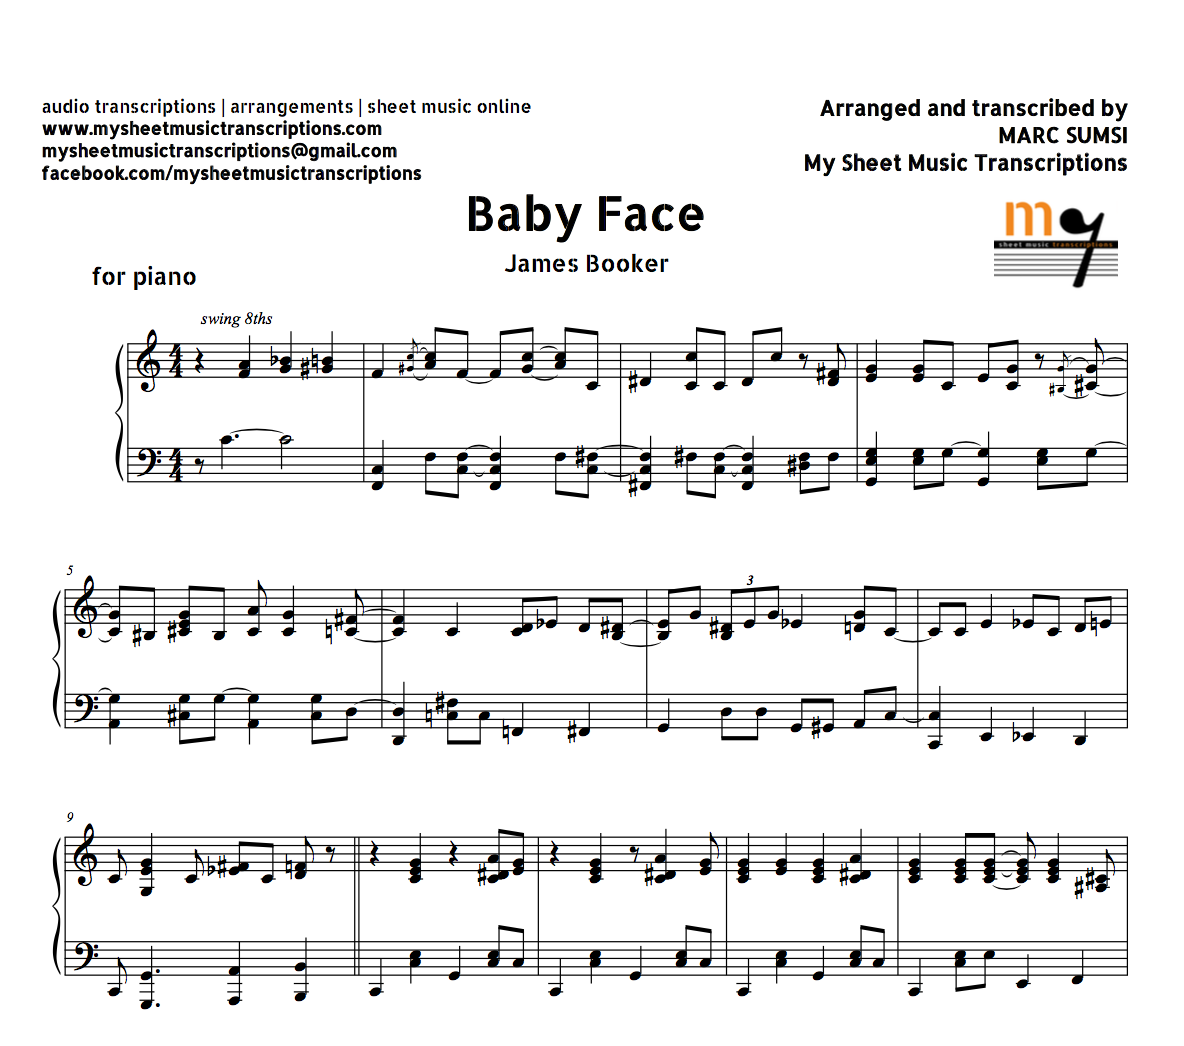 Baby Face - James Booker